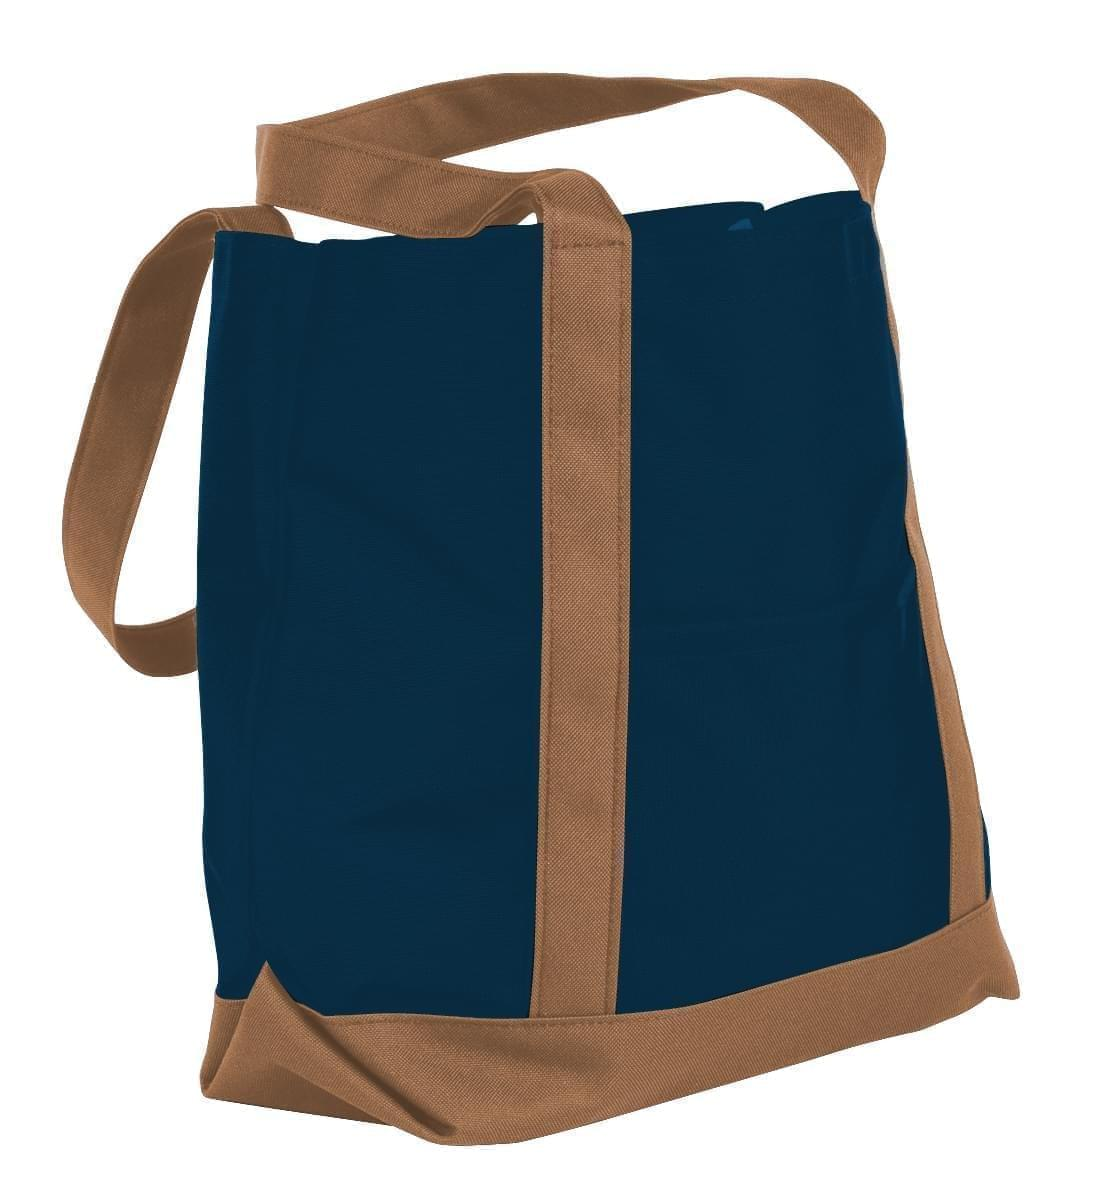 USA Made Nylon Poly Boat Tote Bags, Navy-Bronze, XAACL1UAWO